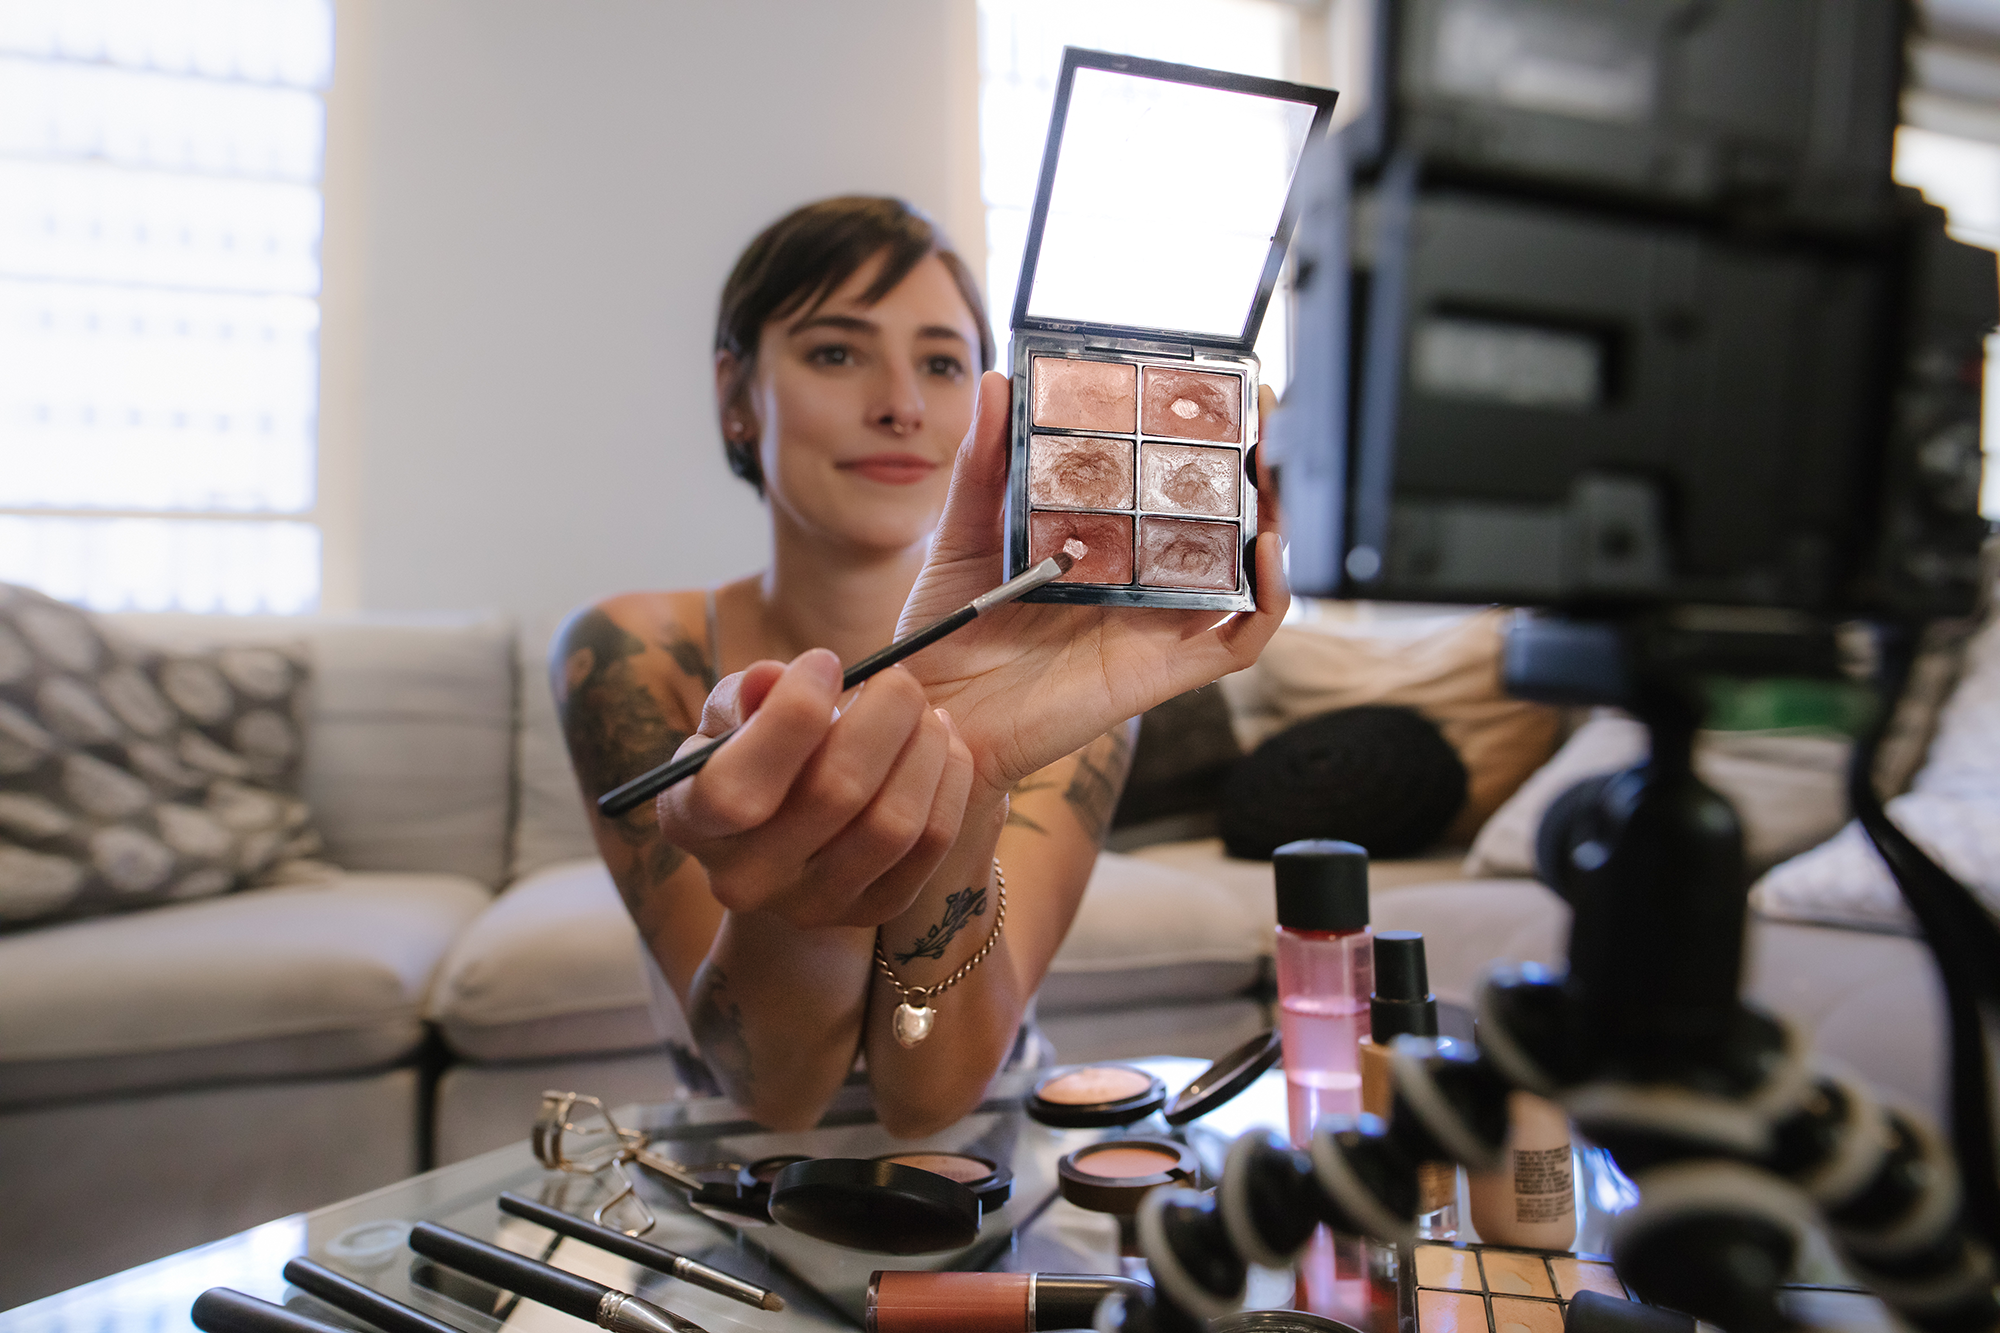 A tattooed woman shows a makeup palette on YouTube